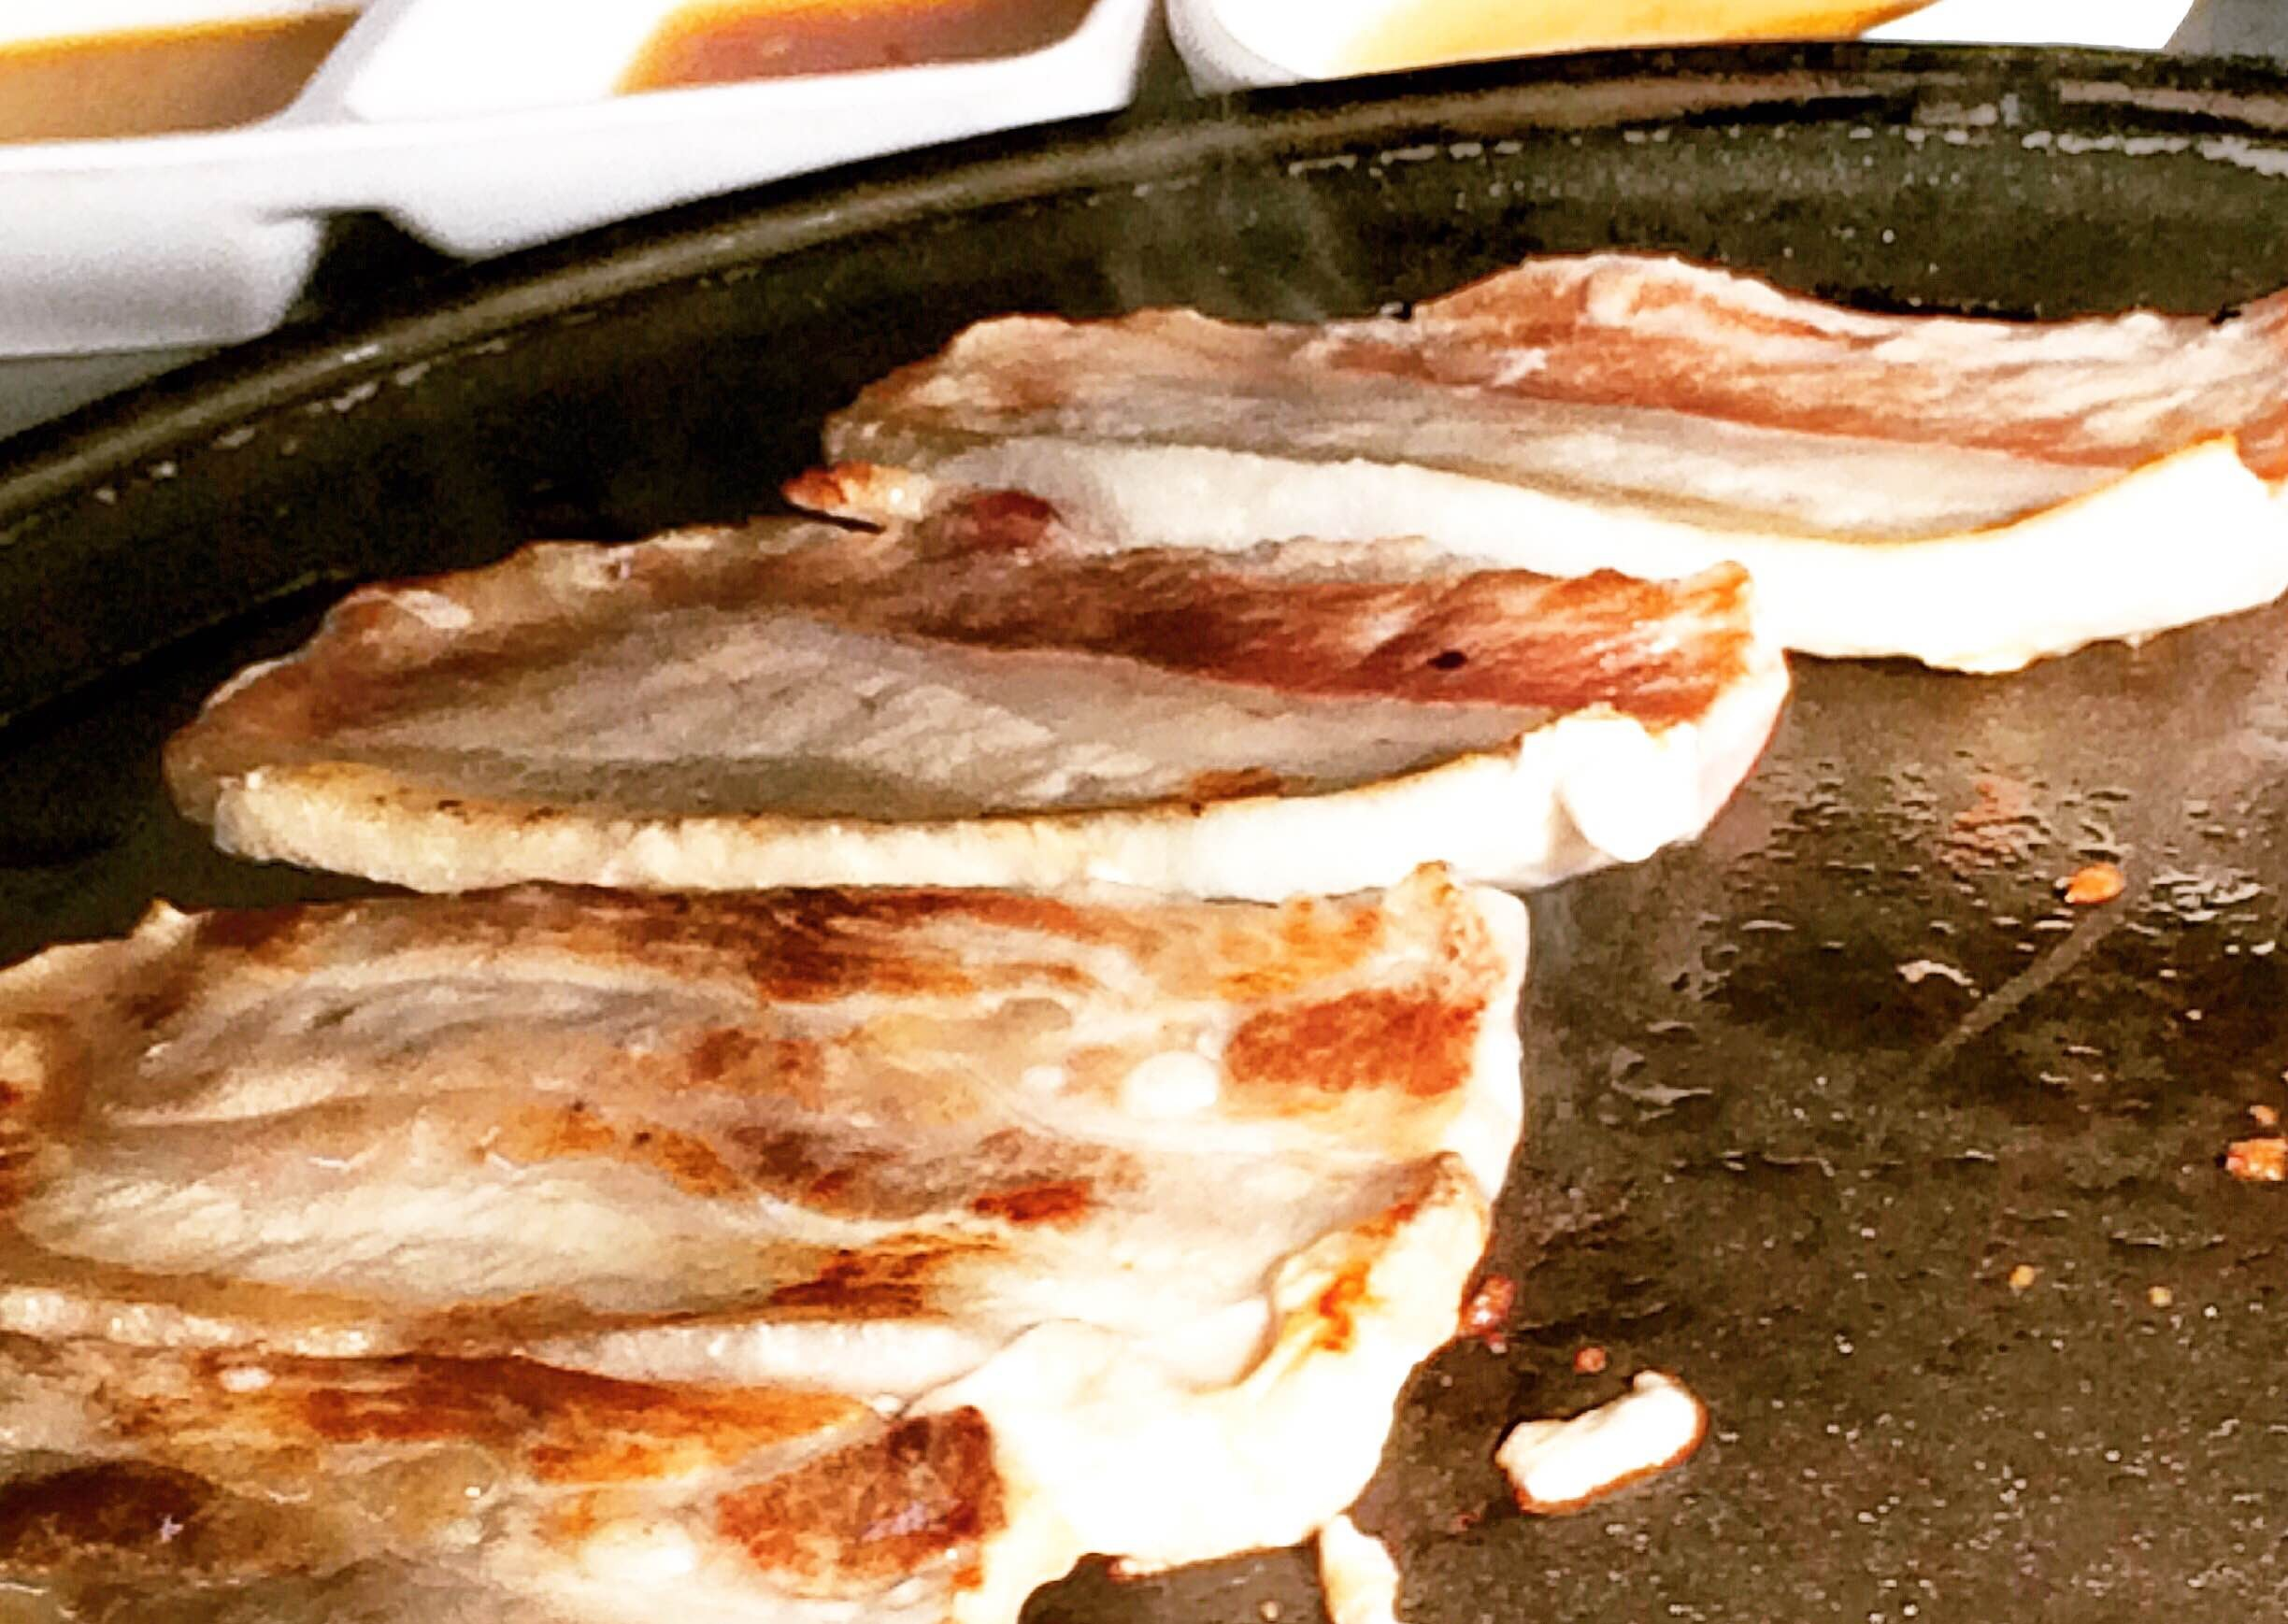 Pork belly cooking on the grill in the center of the table. (Photo: Diana Veseth-Nelson/DC on Heels)